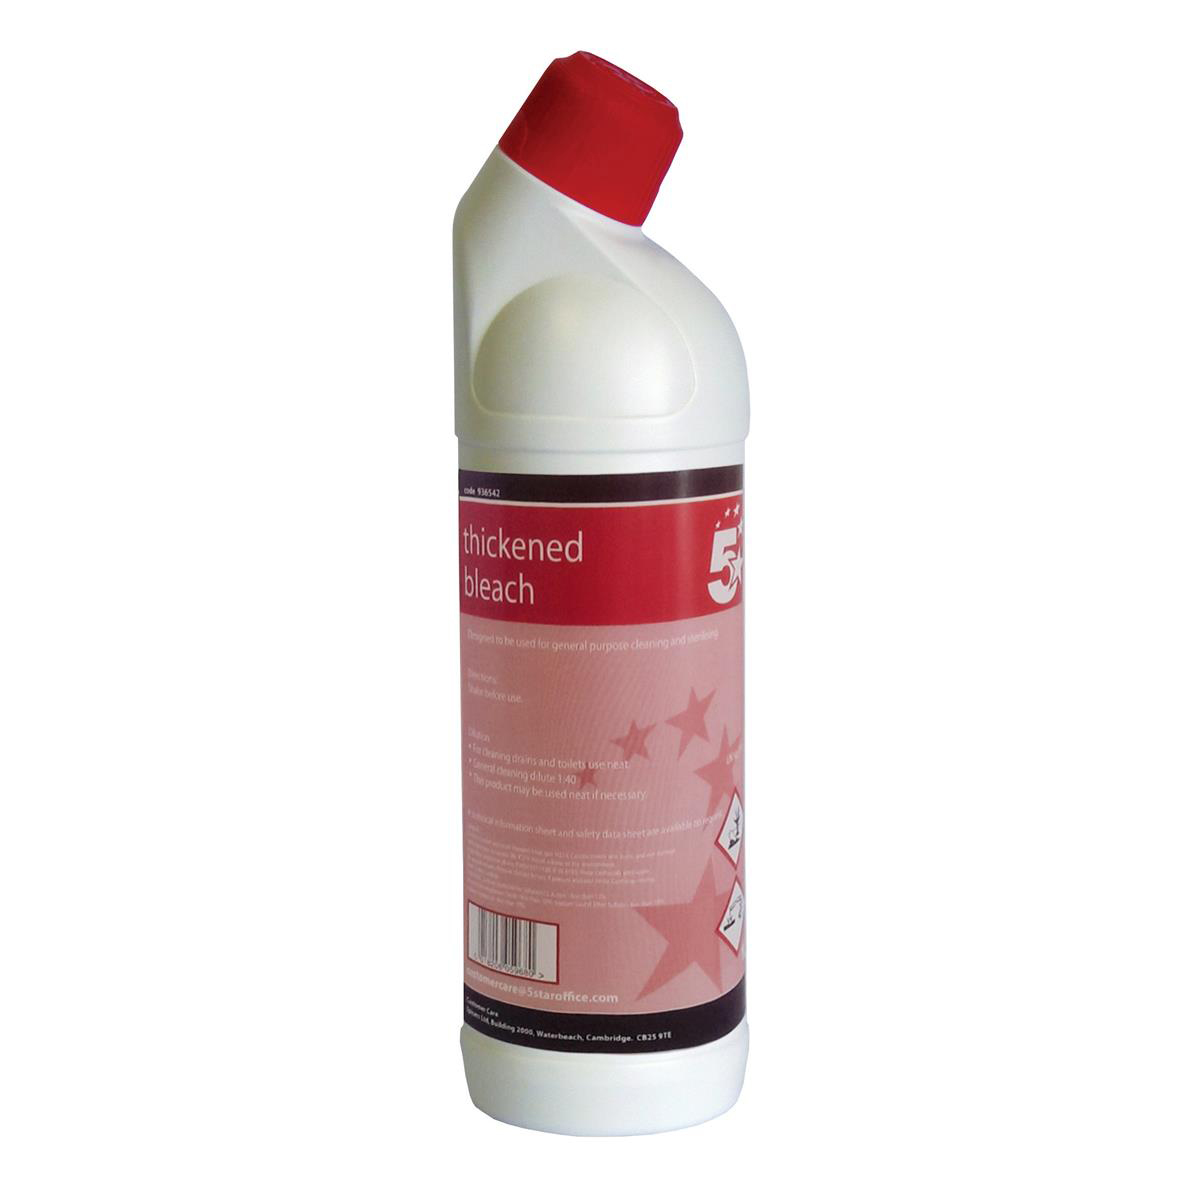 5 Star Facilities Thickened Bleach for General Purpose Cleaning and Sterilising 1 Litre